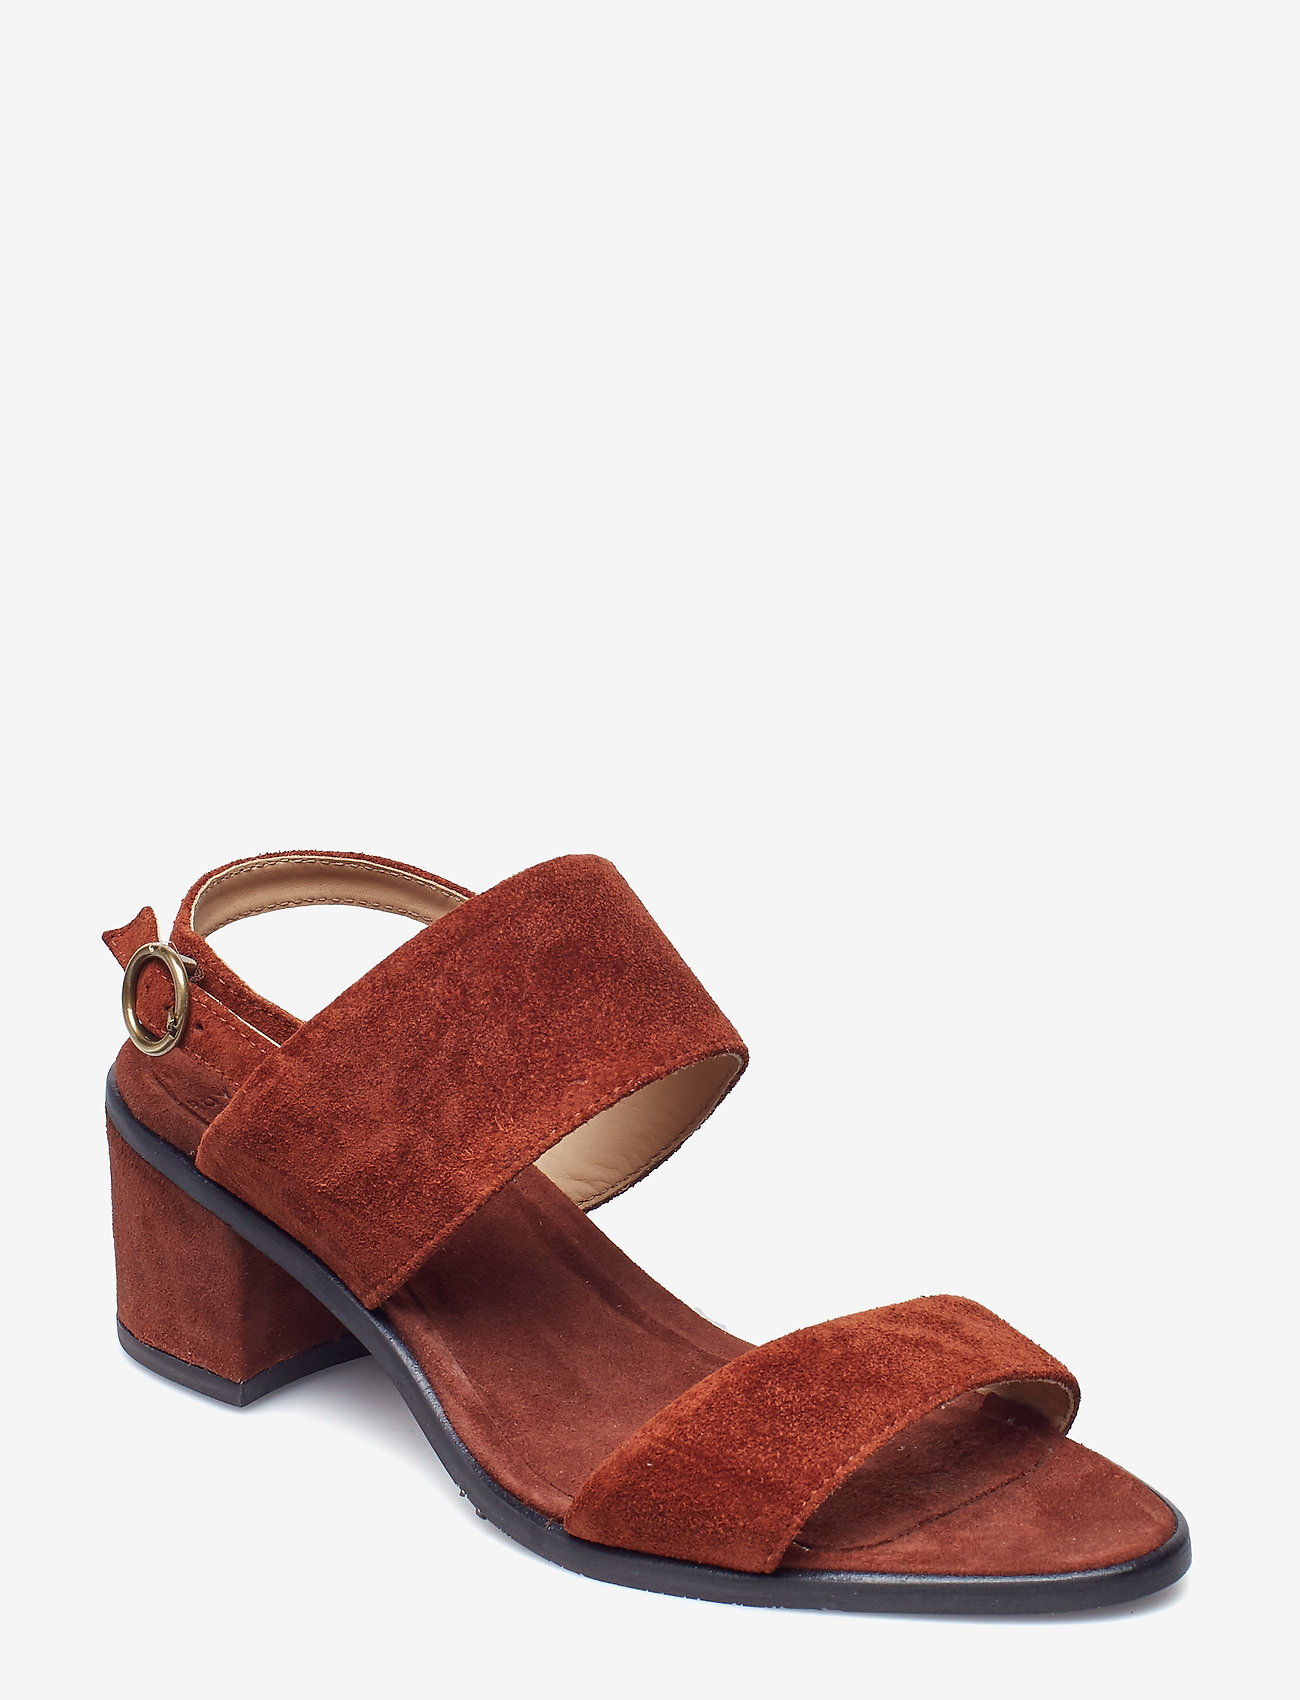 Town Strap Sandal Suede